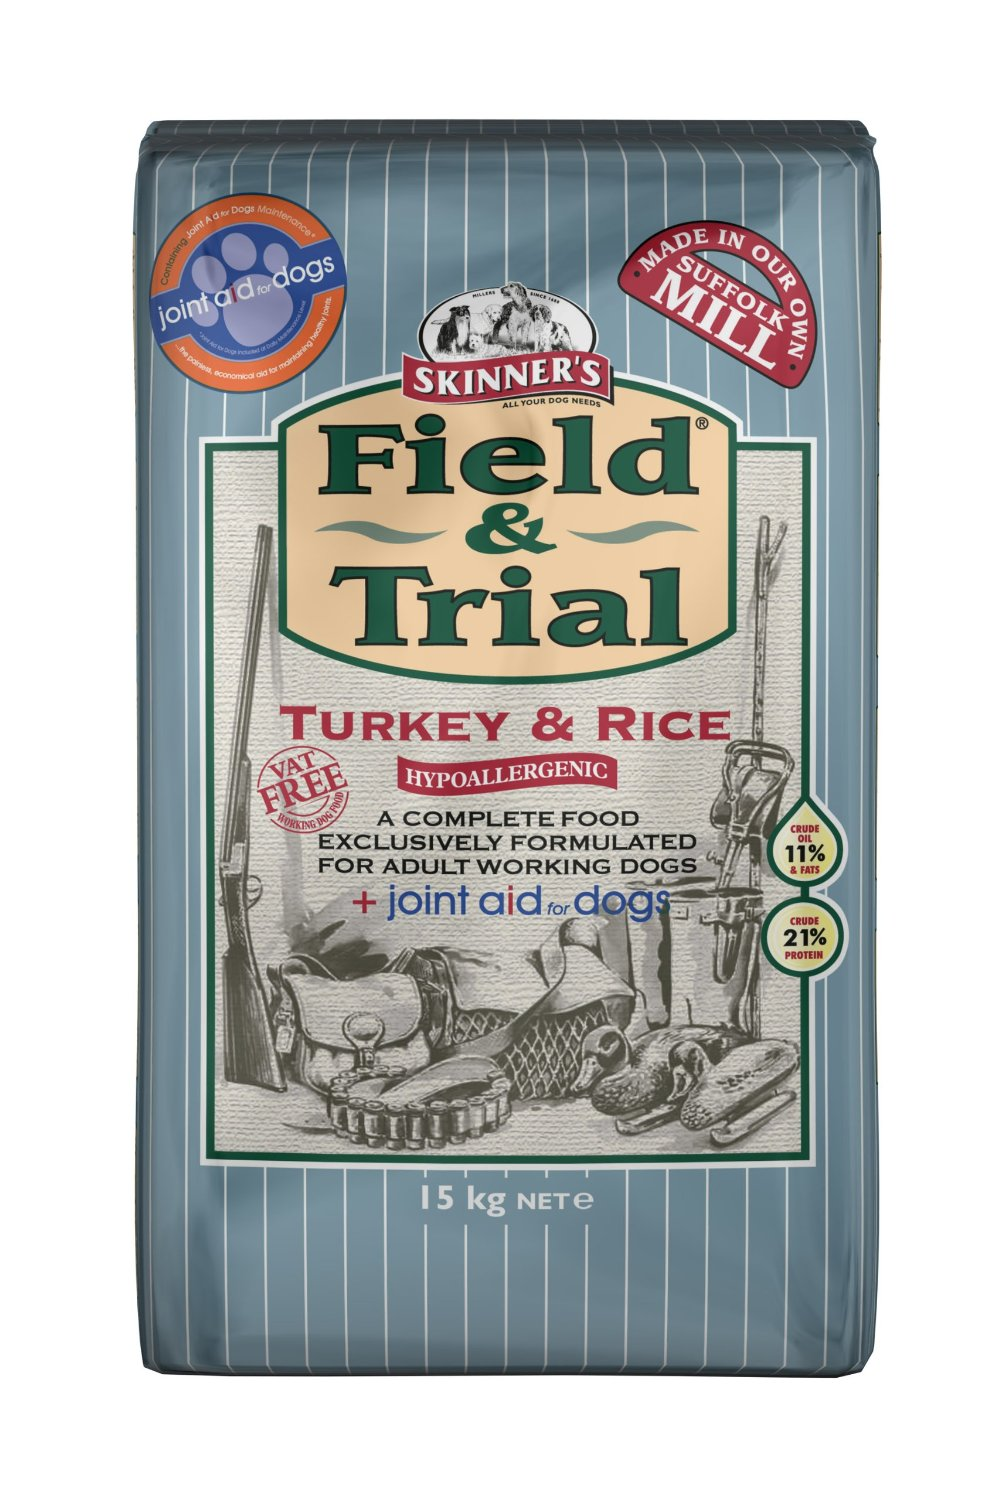 Skinner's Turkey & Rice Dog Food